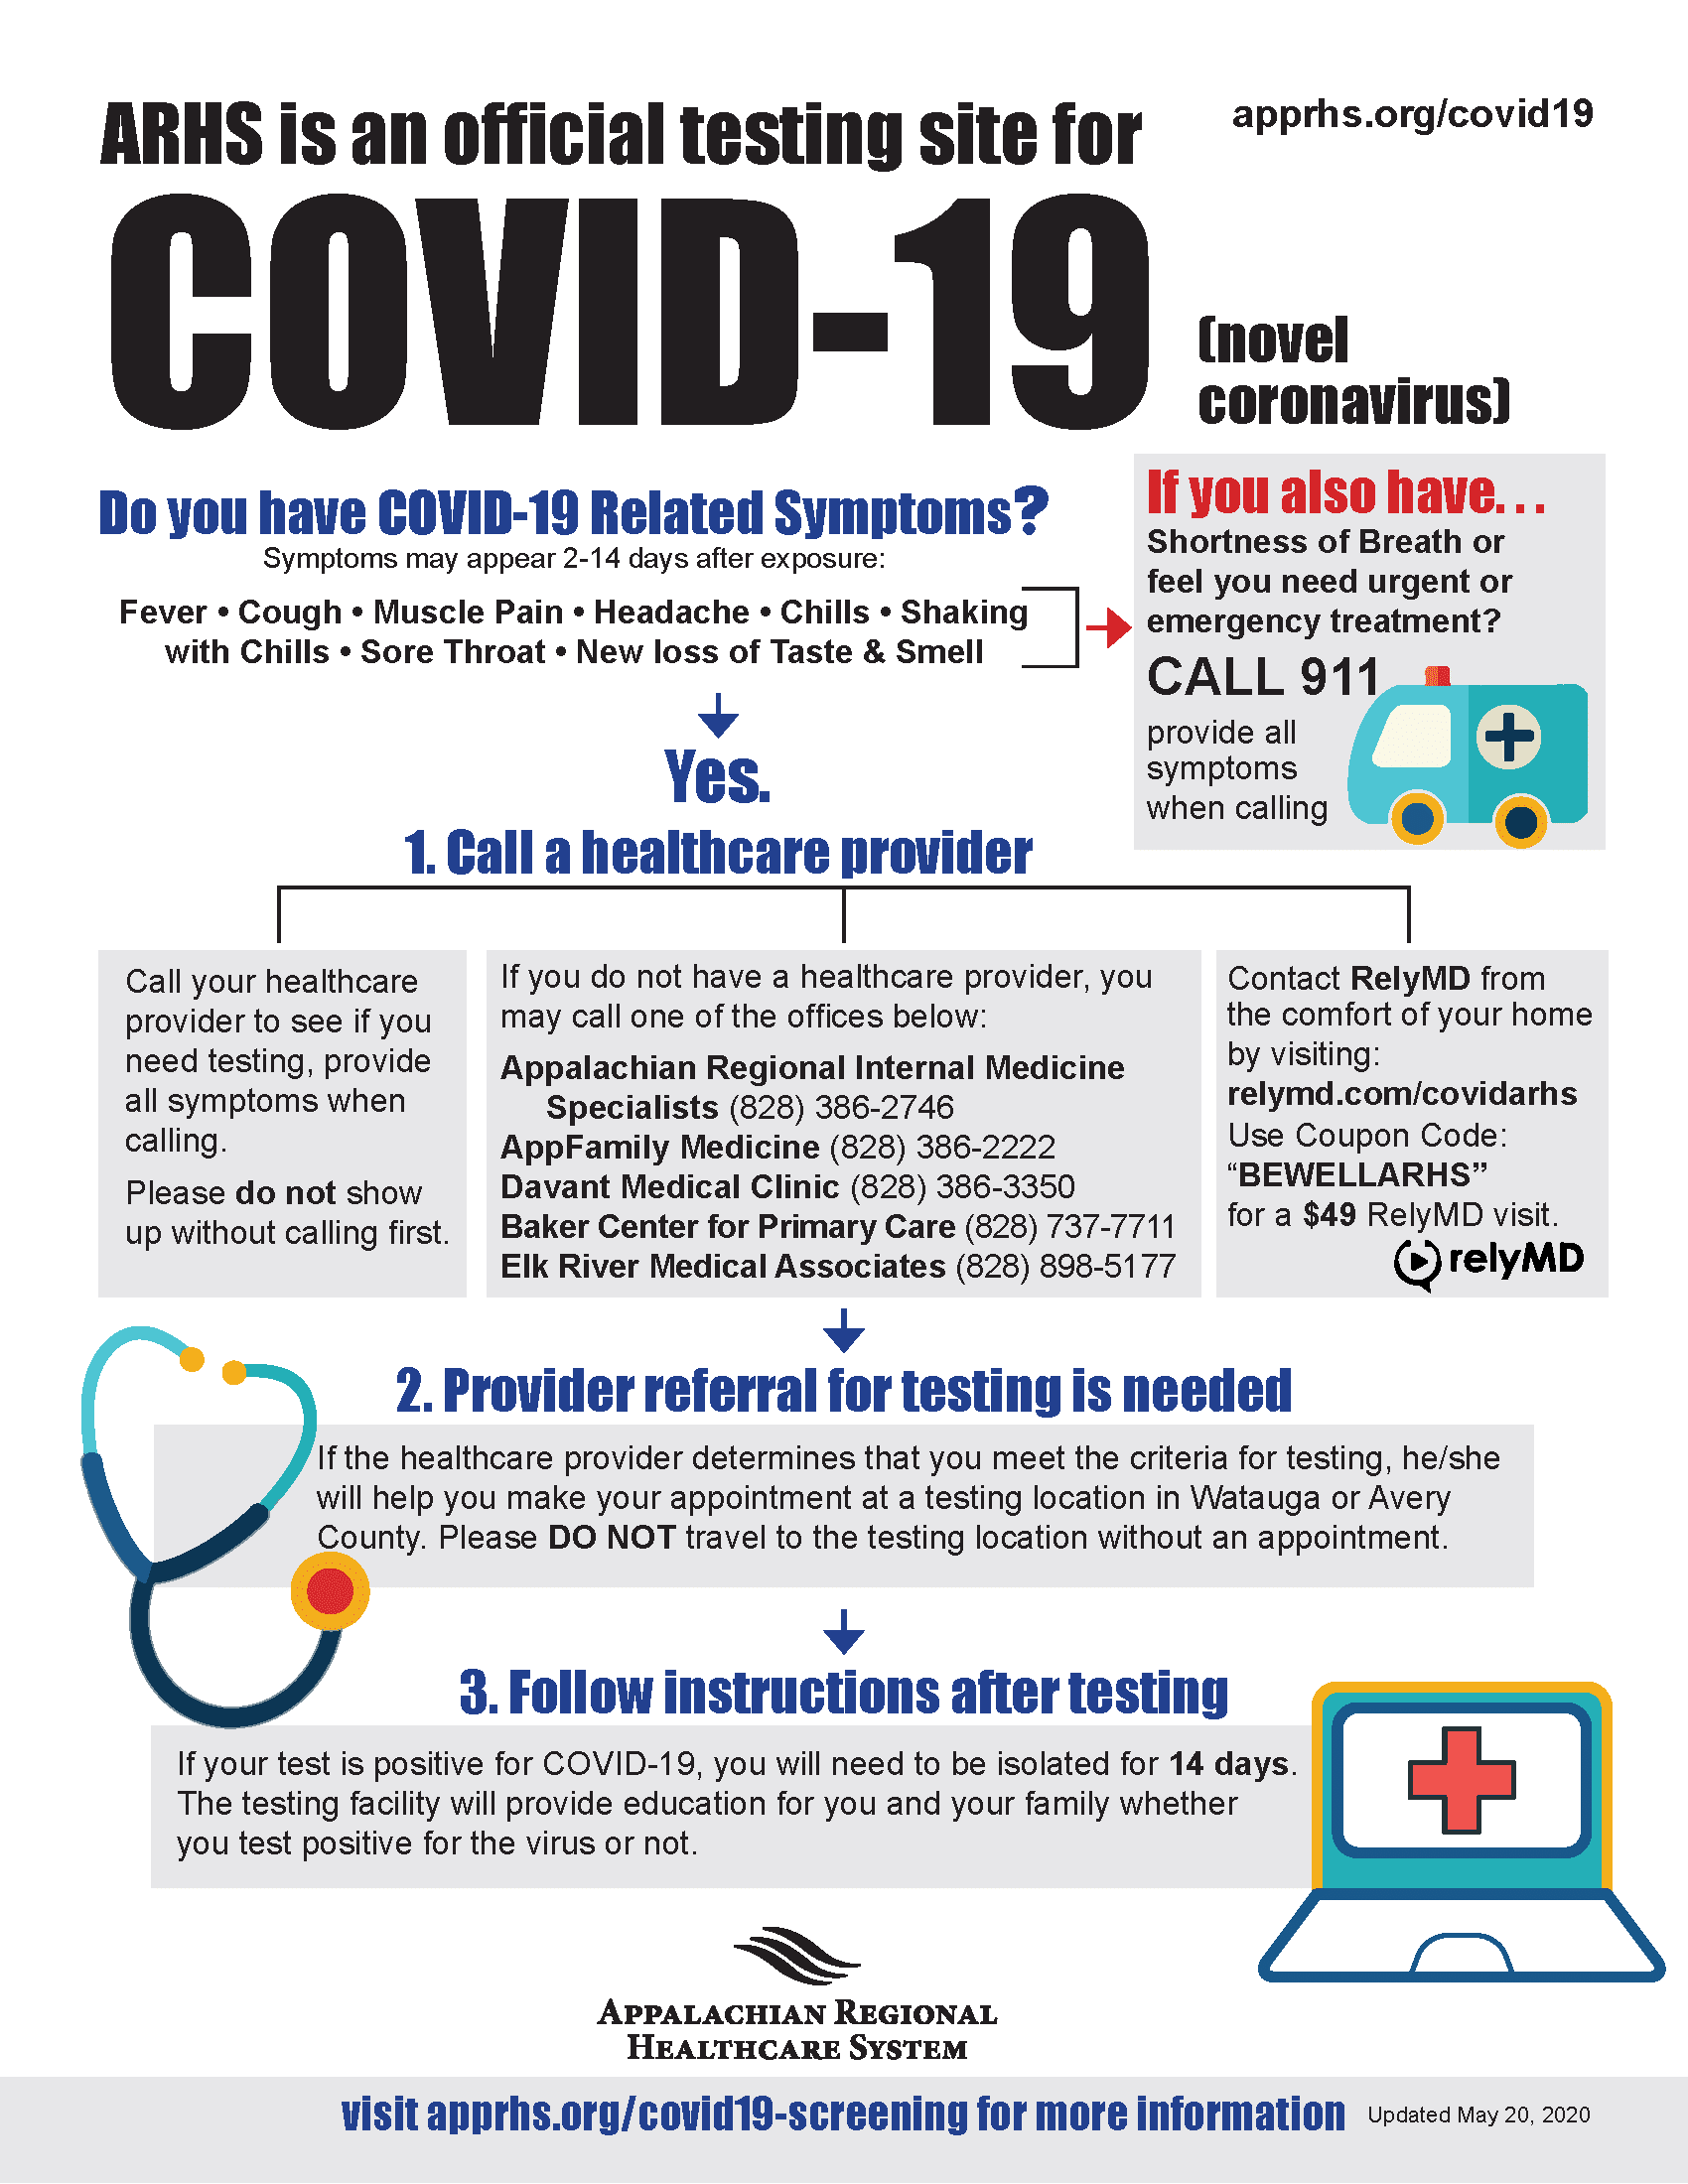 ARHS expands COVID-19 screening options in Watauga and Avery Counties